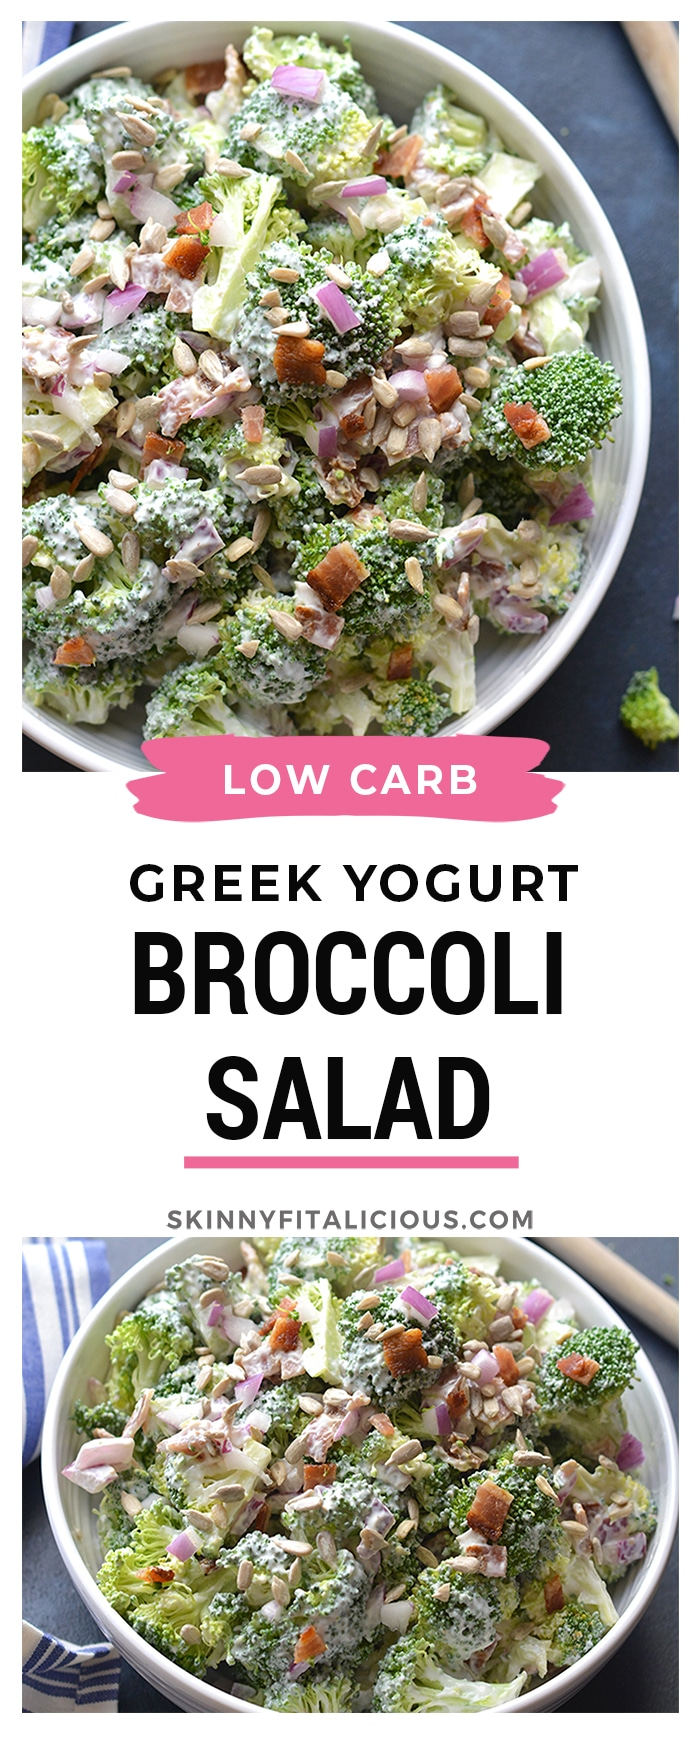 Low Carb Greek Yogurt Broccoli Salad! A deliciously sweet salad with crunchy broccoli, bacon and more! No baking required. Just stir, chill and eat. The perfect warm weather salad that's higher in protein and good for you. Gluten Free + Low Calorie